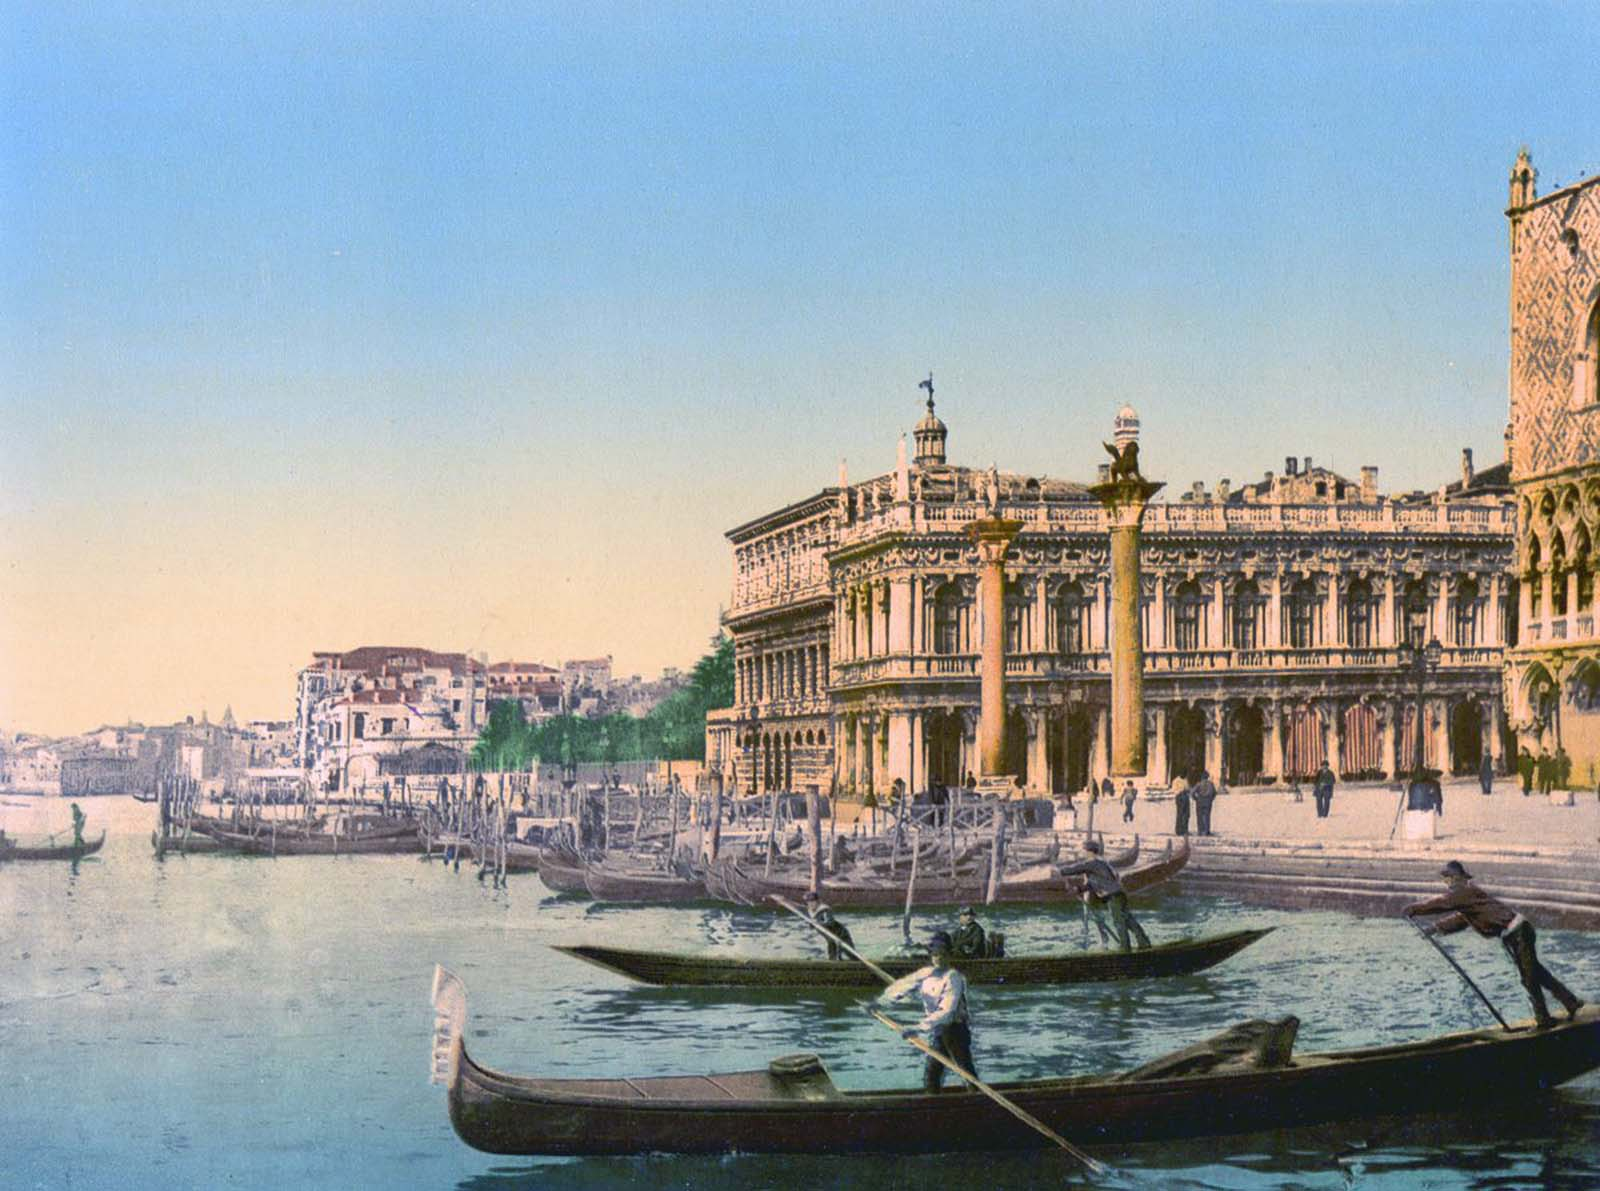 venice-in-beautiful-old-color-images-1890_5.jpg